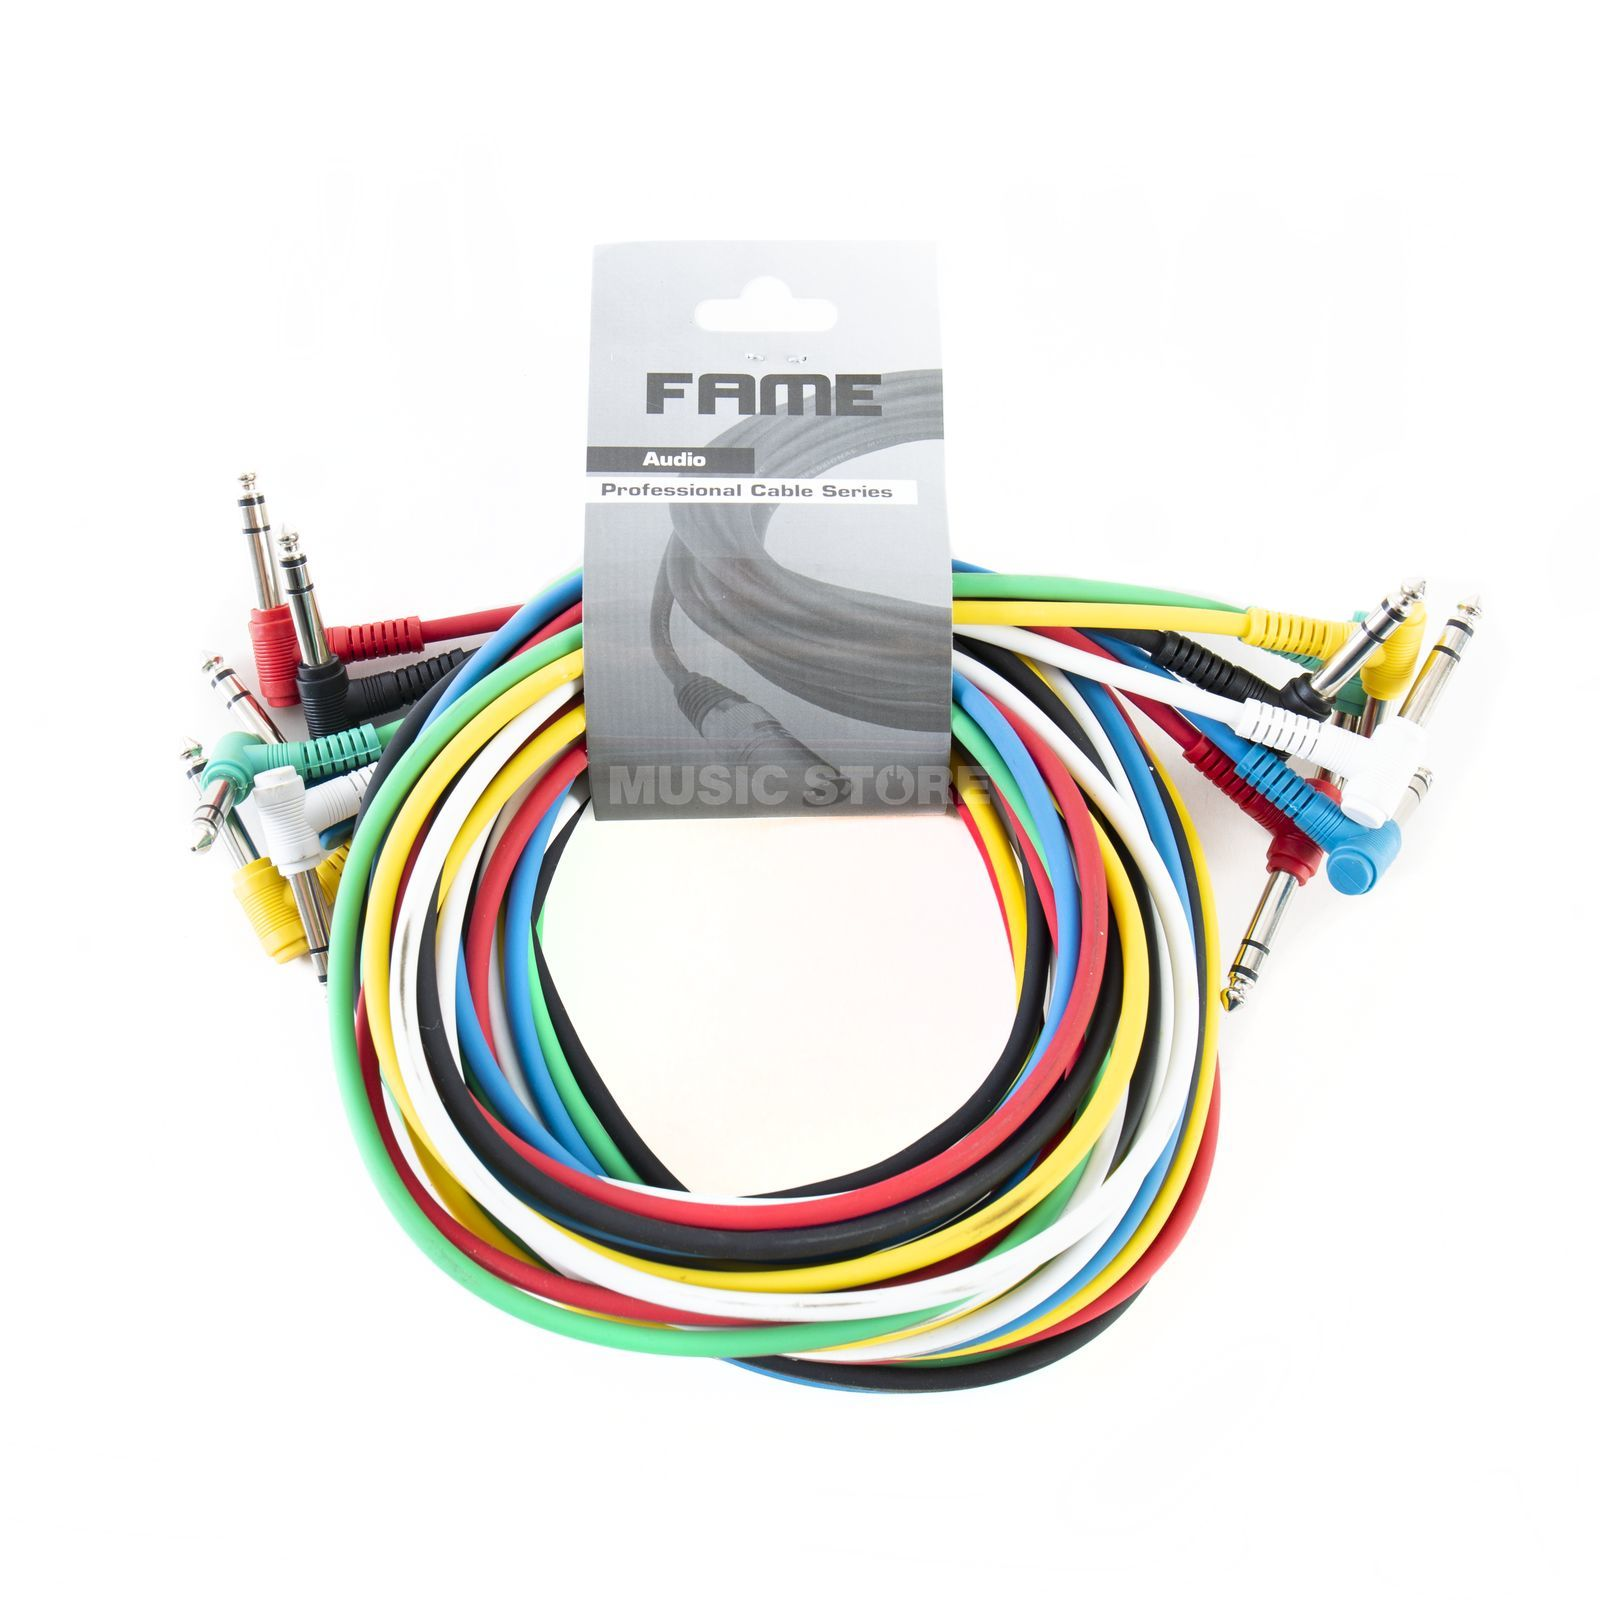 MUSIC STORE Patch Cables 3m Angled Pack Of 6 - Colourful Produktbillede